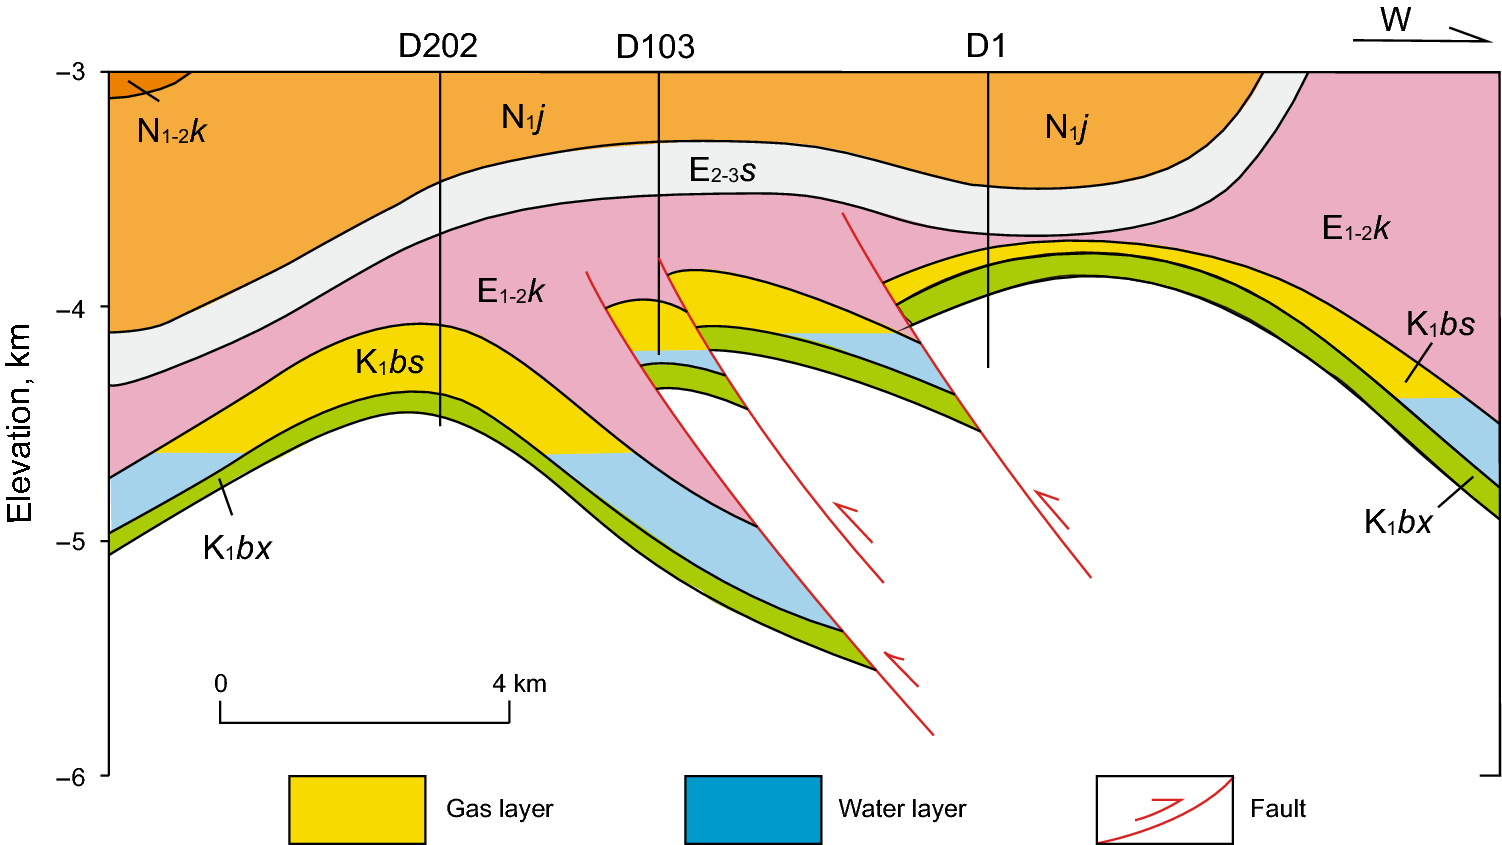 The petroleum system: a new classification scheme based on